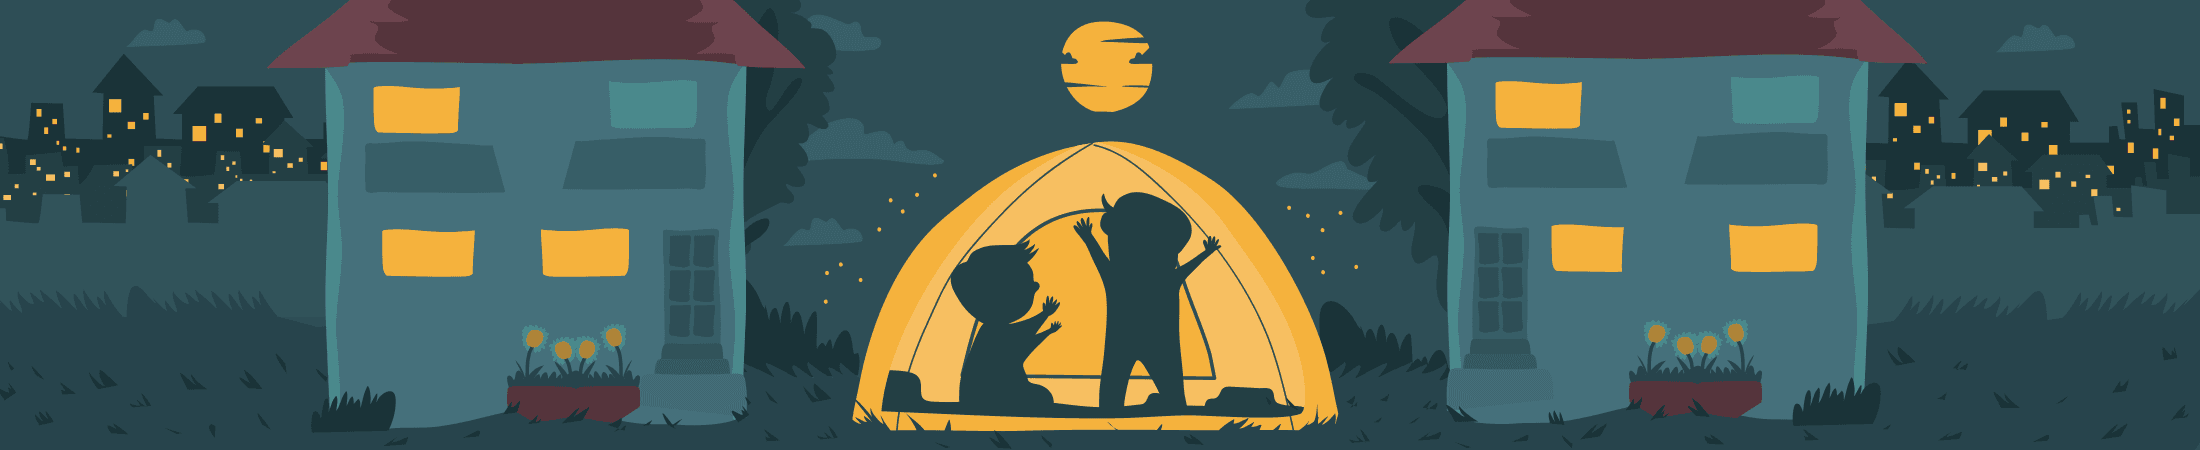 Cartoon Illustration of two kids inside a tent camping at their house backyard